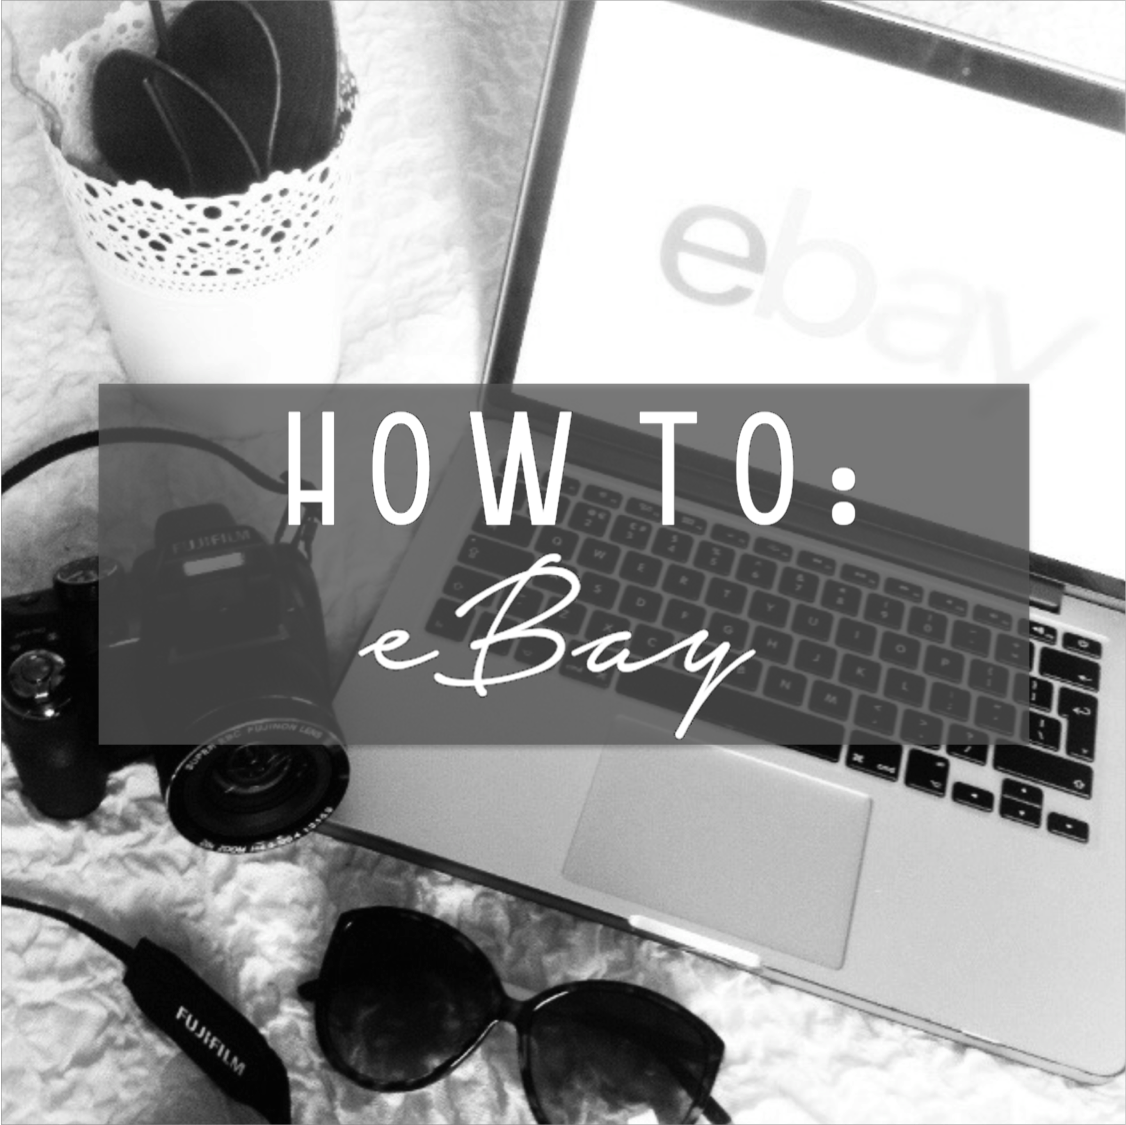 How to eBay top tips learn ebay works how to make money clothes and stuff